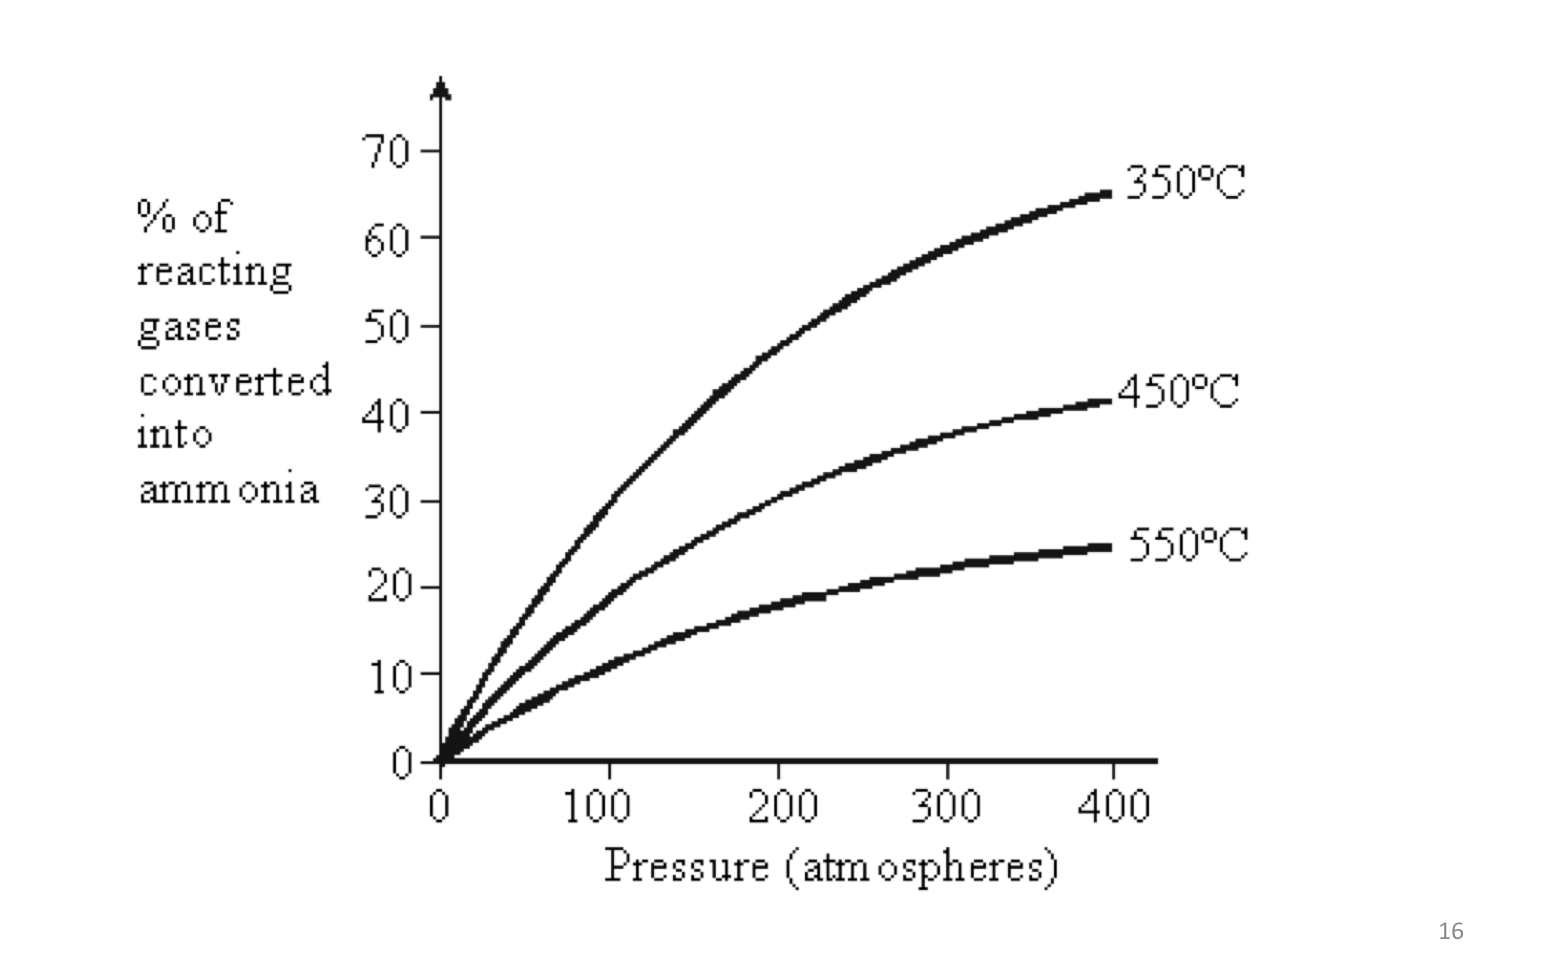 C3.5 Production of ammonia (an example of a reversible